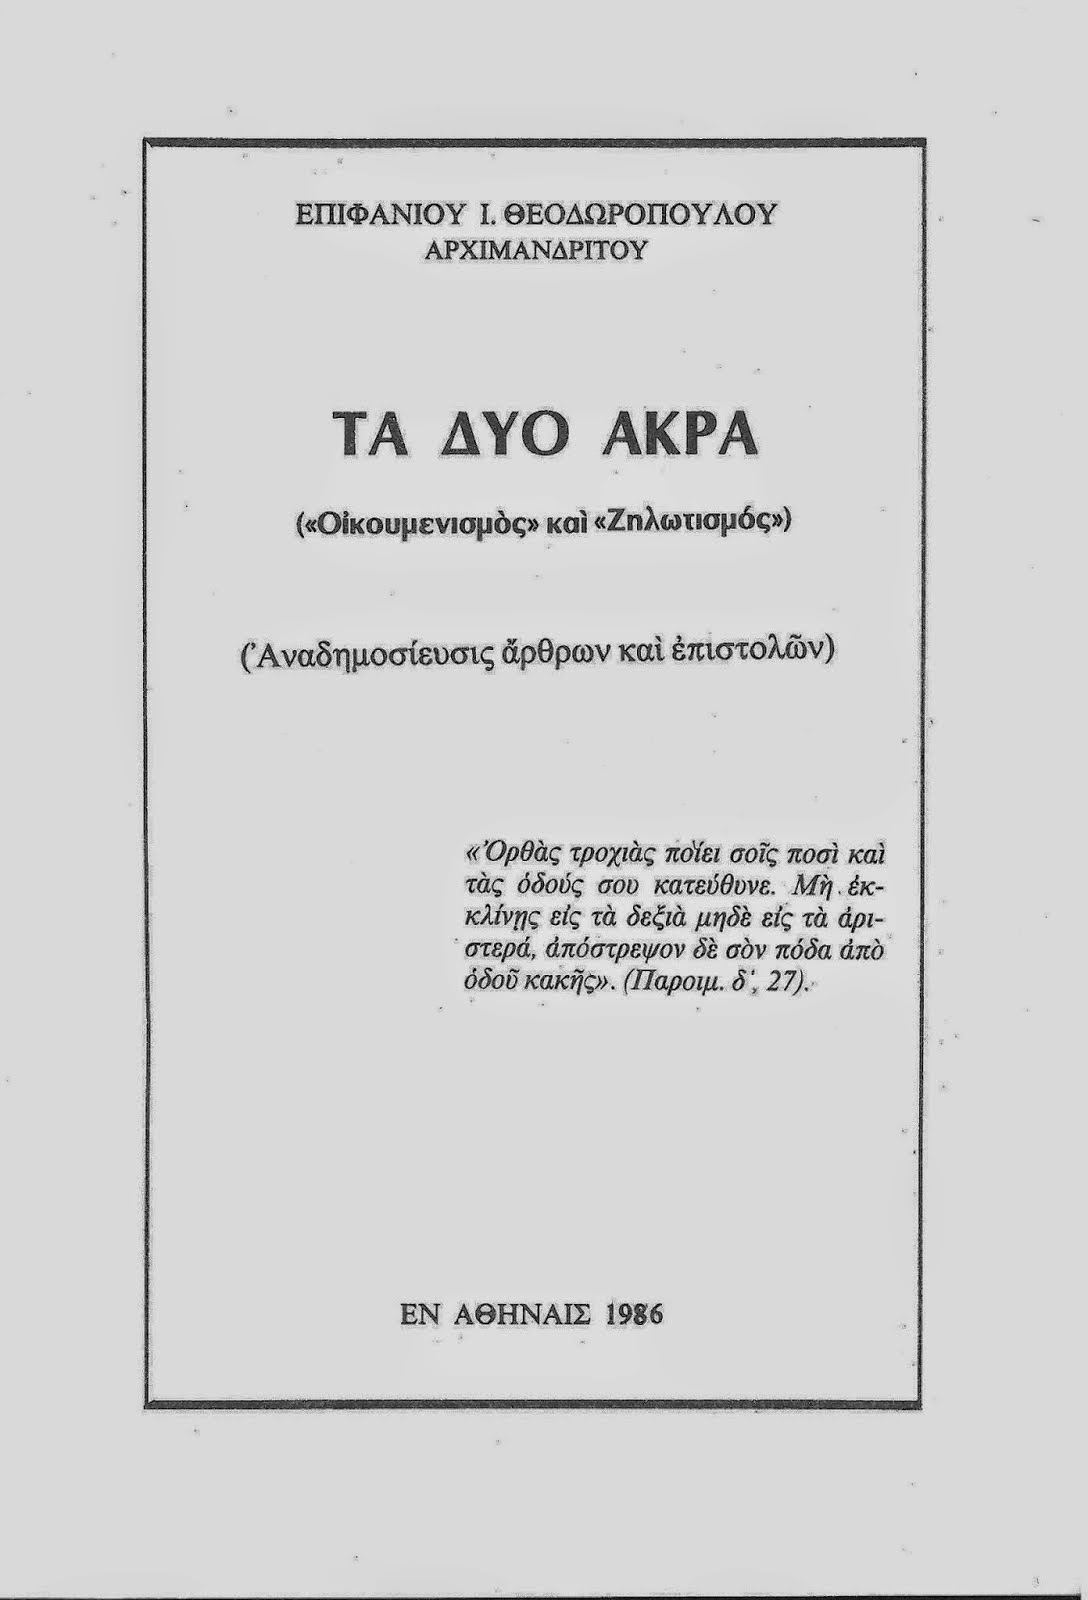 Π. ΕΠΙΦΑΝΙΟΥ ΘΕΟΔΩΡΟΠΟΥΛΟΥ